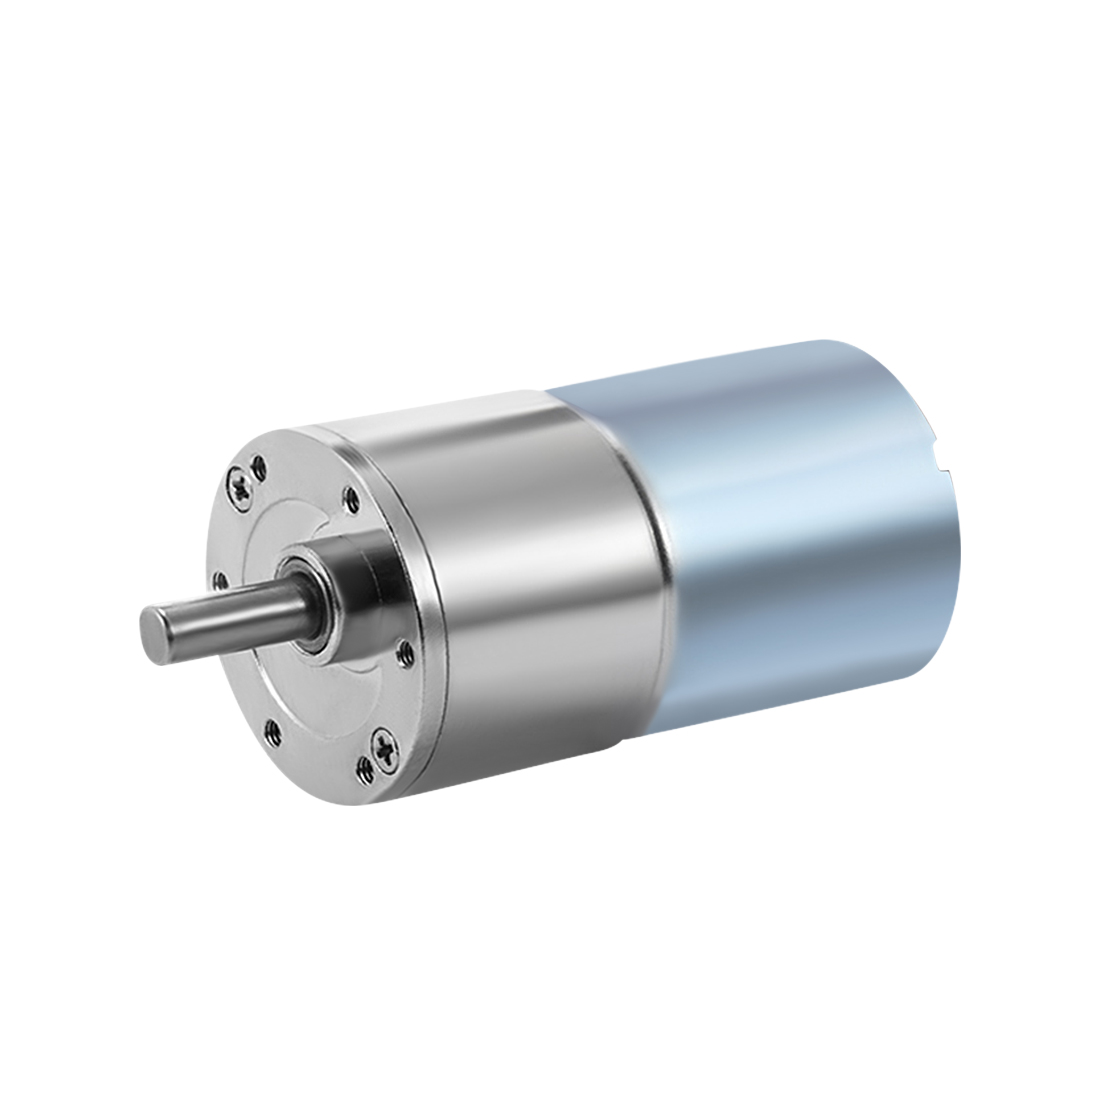 DC12V 300RPM Micro Gear Box Motor Speed Reduction Gearbox Eccentric Output Shaft